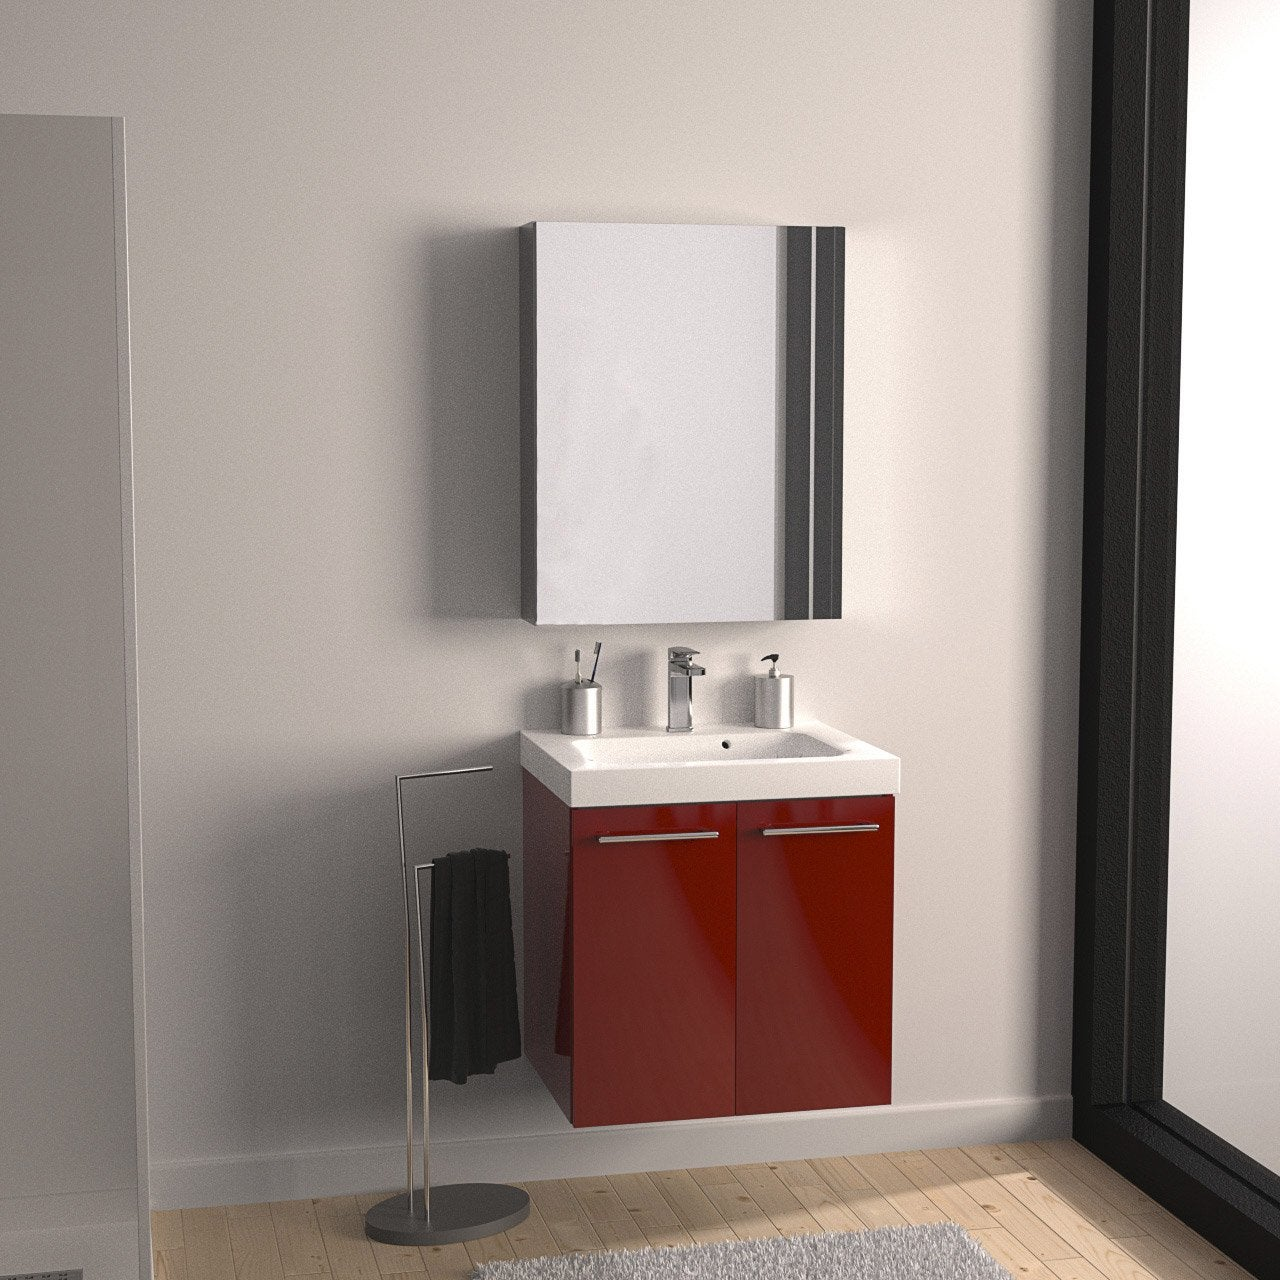 Superb Meuble Salle De Bain Leroy Merlin #13: Meuble Vasque L.61 X H.57.7 X P.46 Cm, Rouge, SENSEA Remix | Leroy Merlin